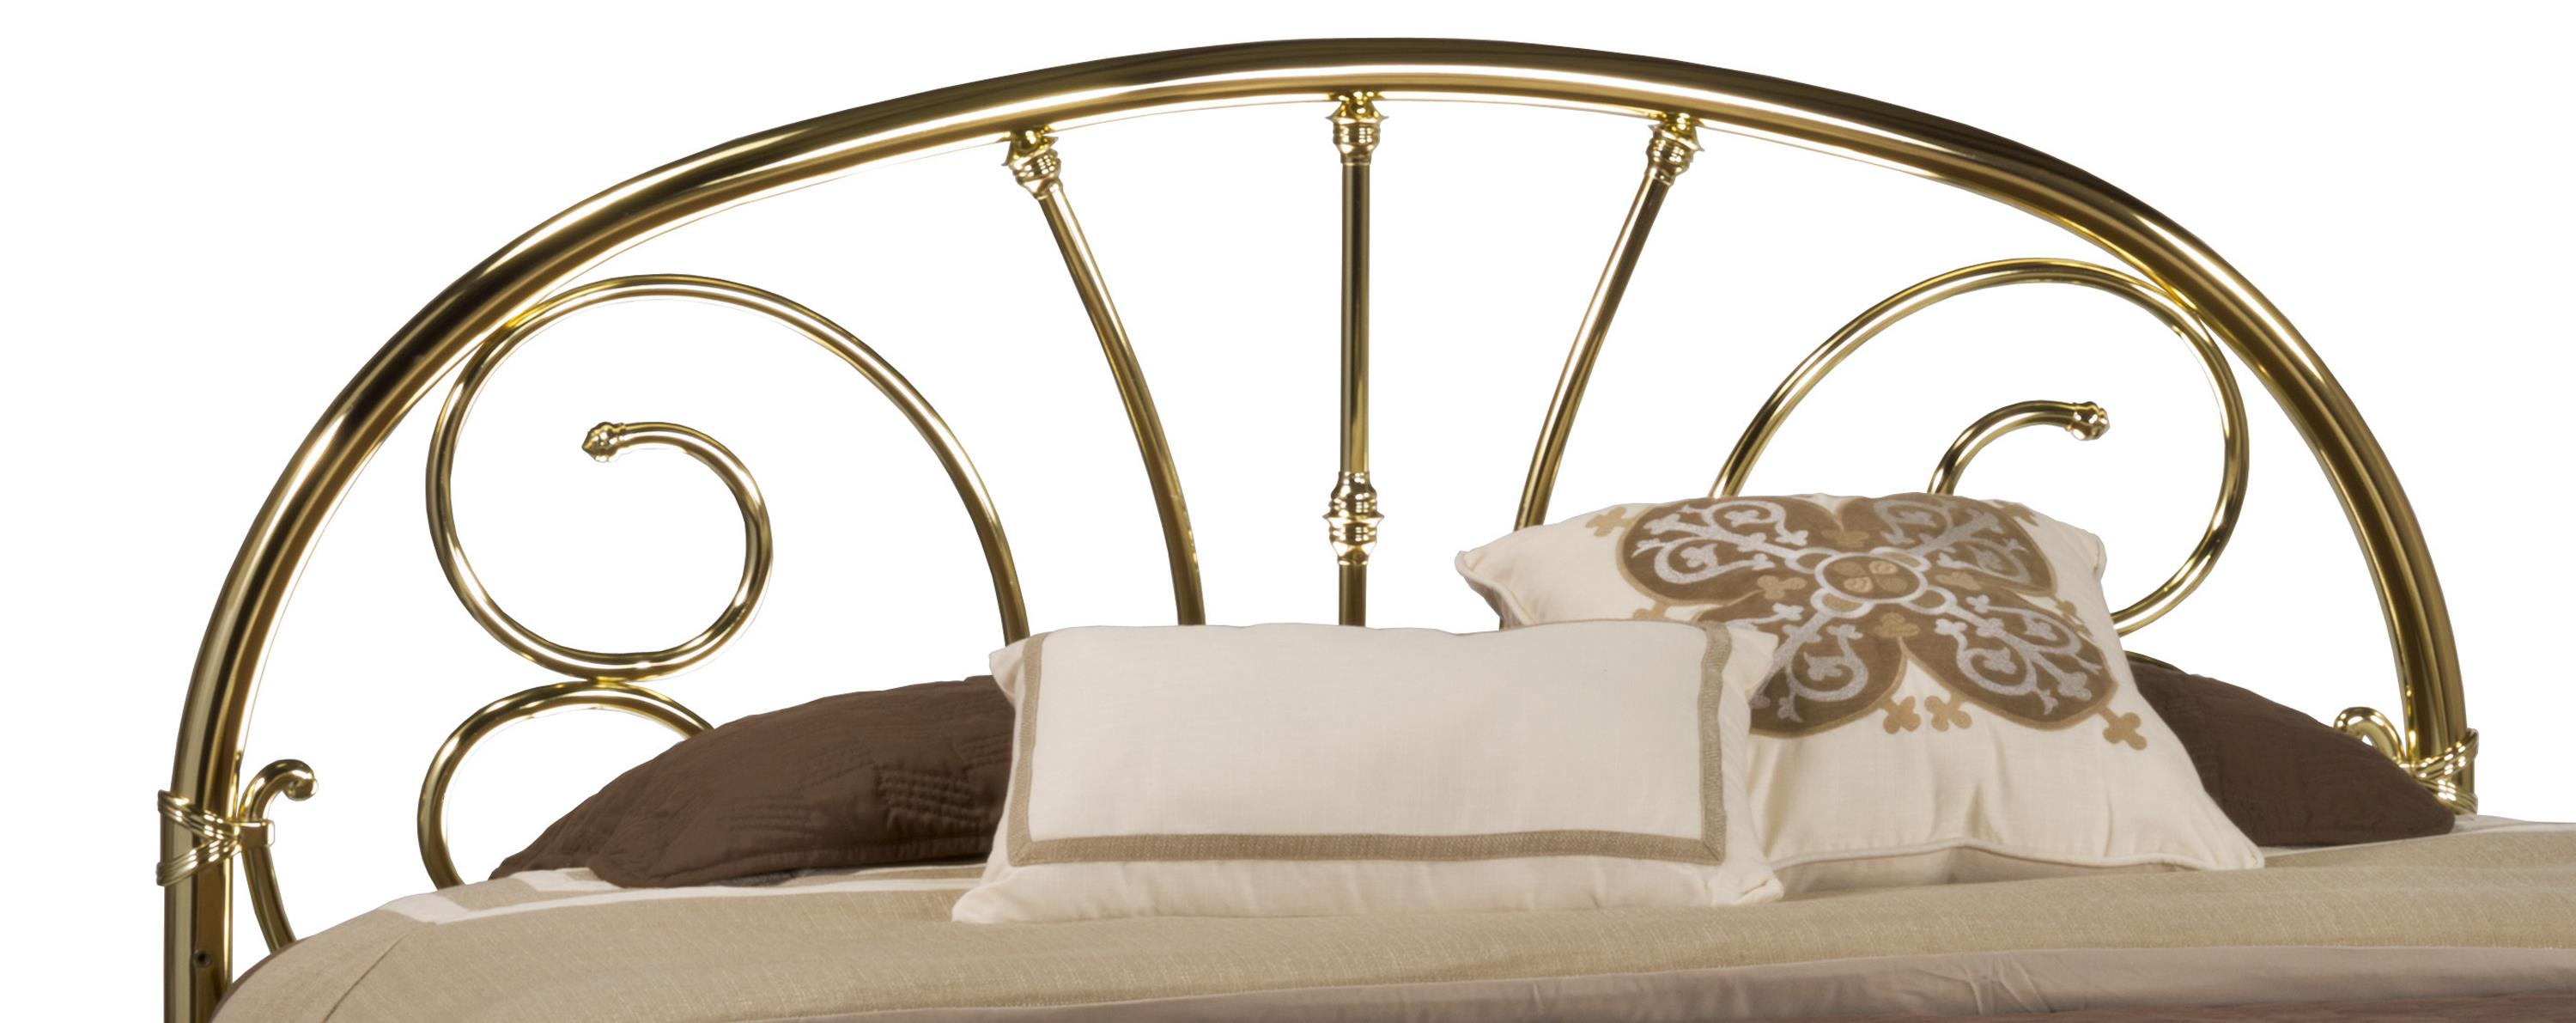 Hillsdale Metal Beds Queen Headboard with Rails - Item Number: 1070HQR